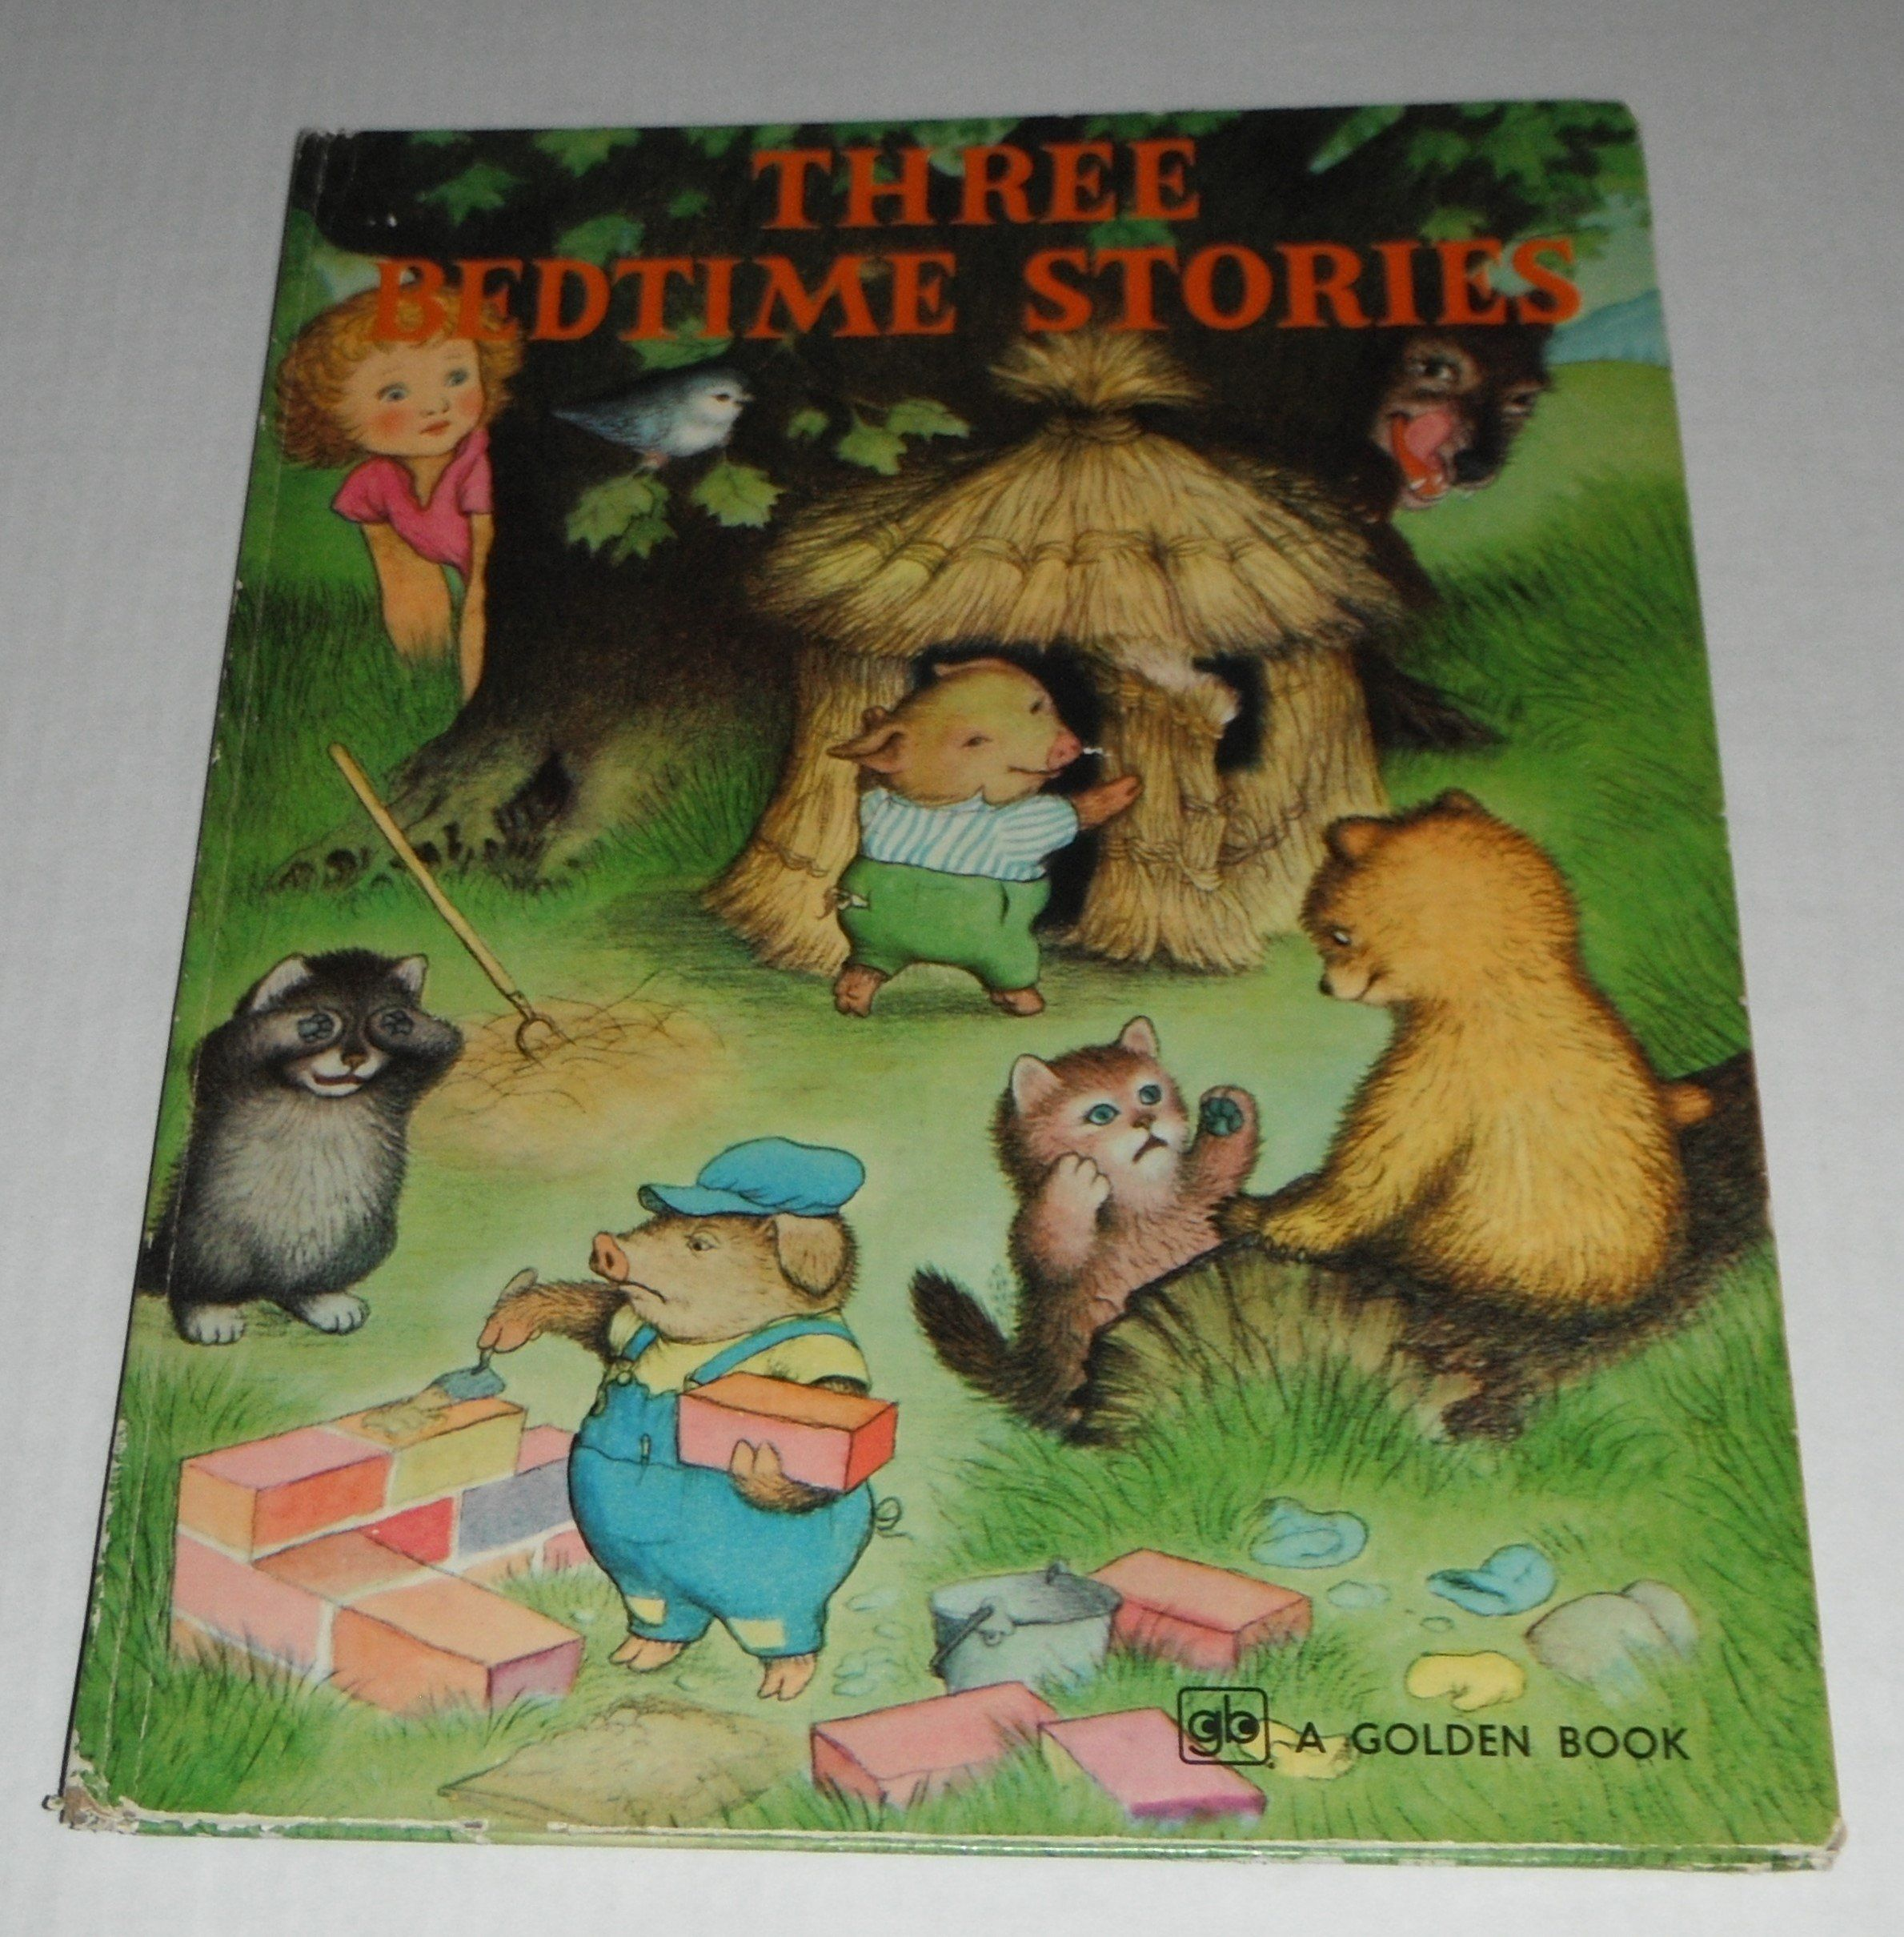 Three Bedtime Stories Pictures By Garth Williams The Three Little Kittens The Three Bears The Three L Bedtime Stories Garth Williams Vintage Children S Books